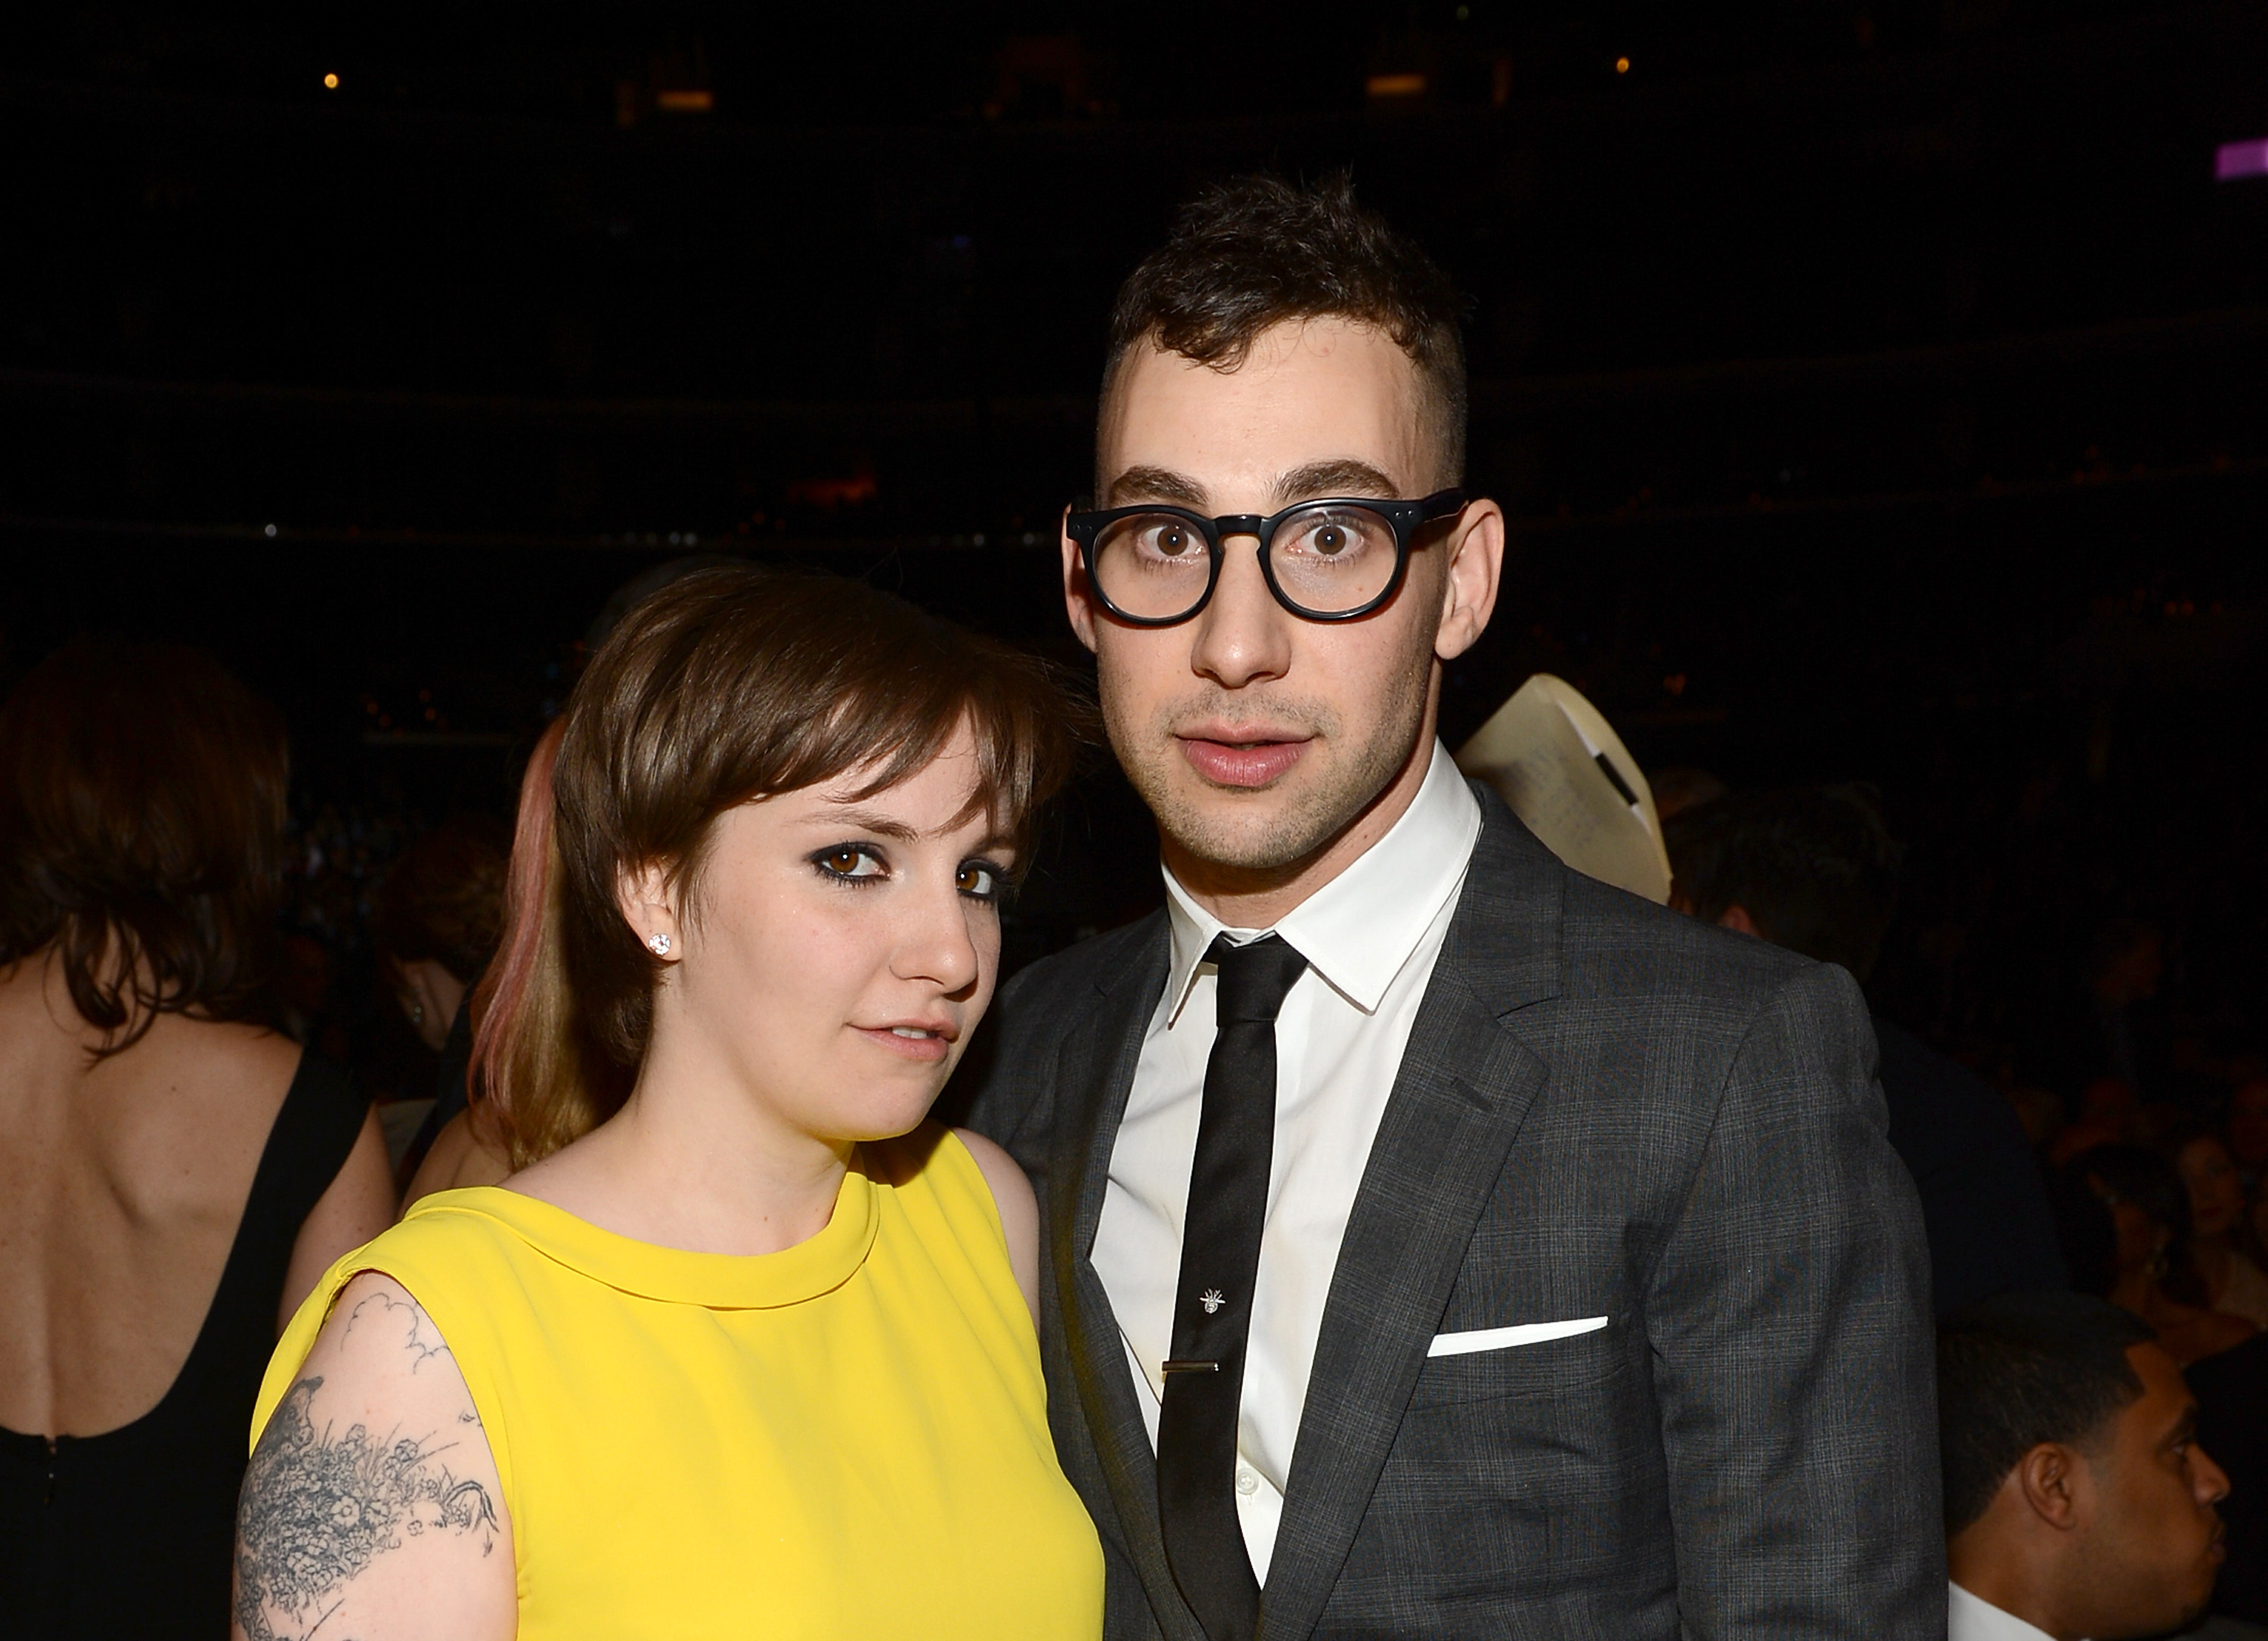 Lena Dunham and Jack Antonoff have reportedly broken up after 5 years together